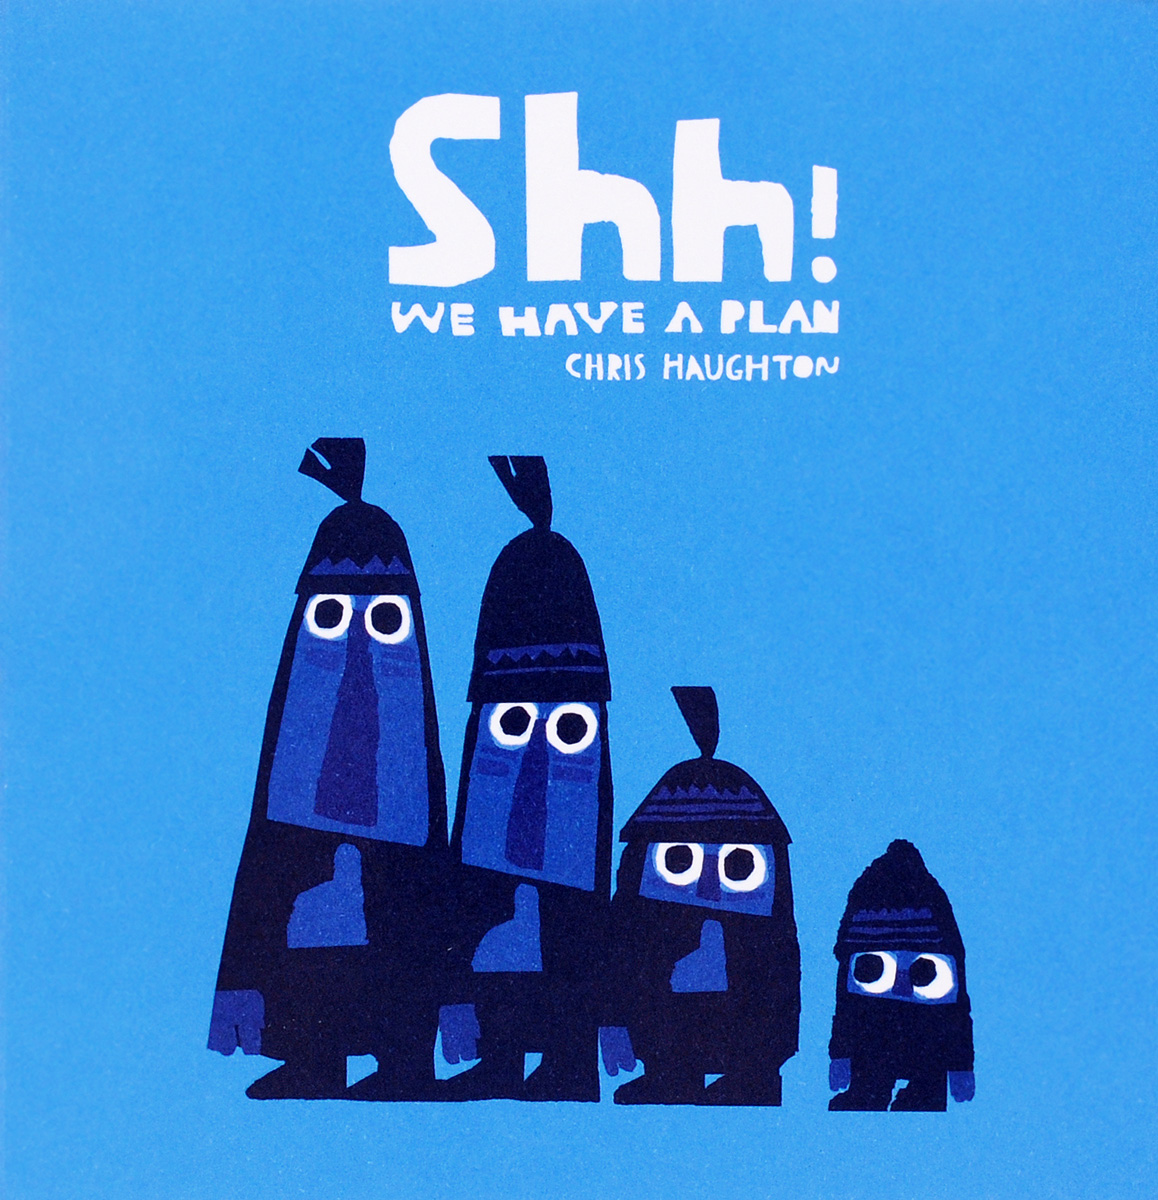 Shh! We Have a Plan lumy блокнот anytime we go away